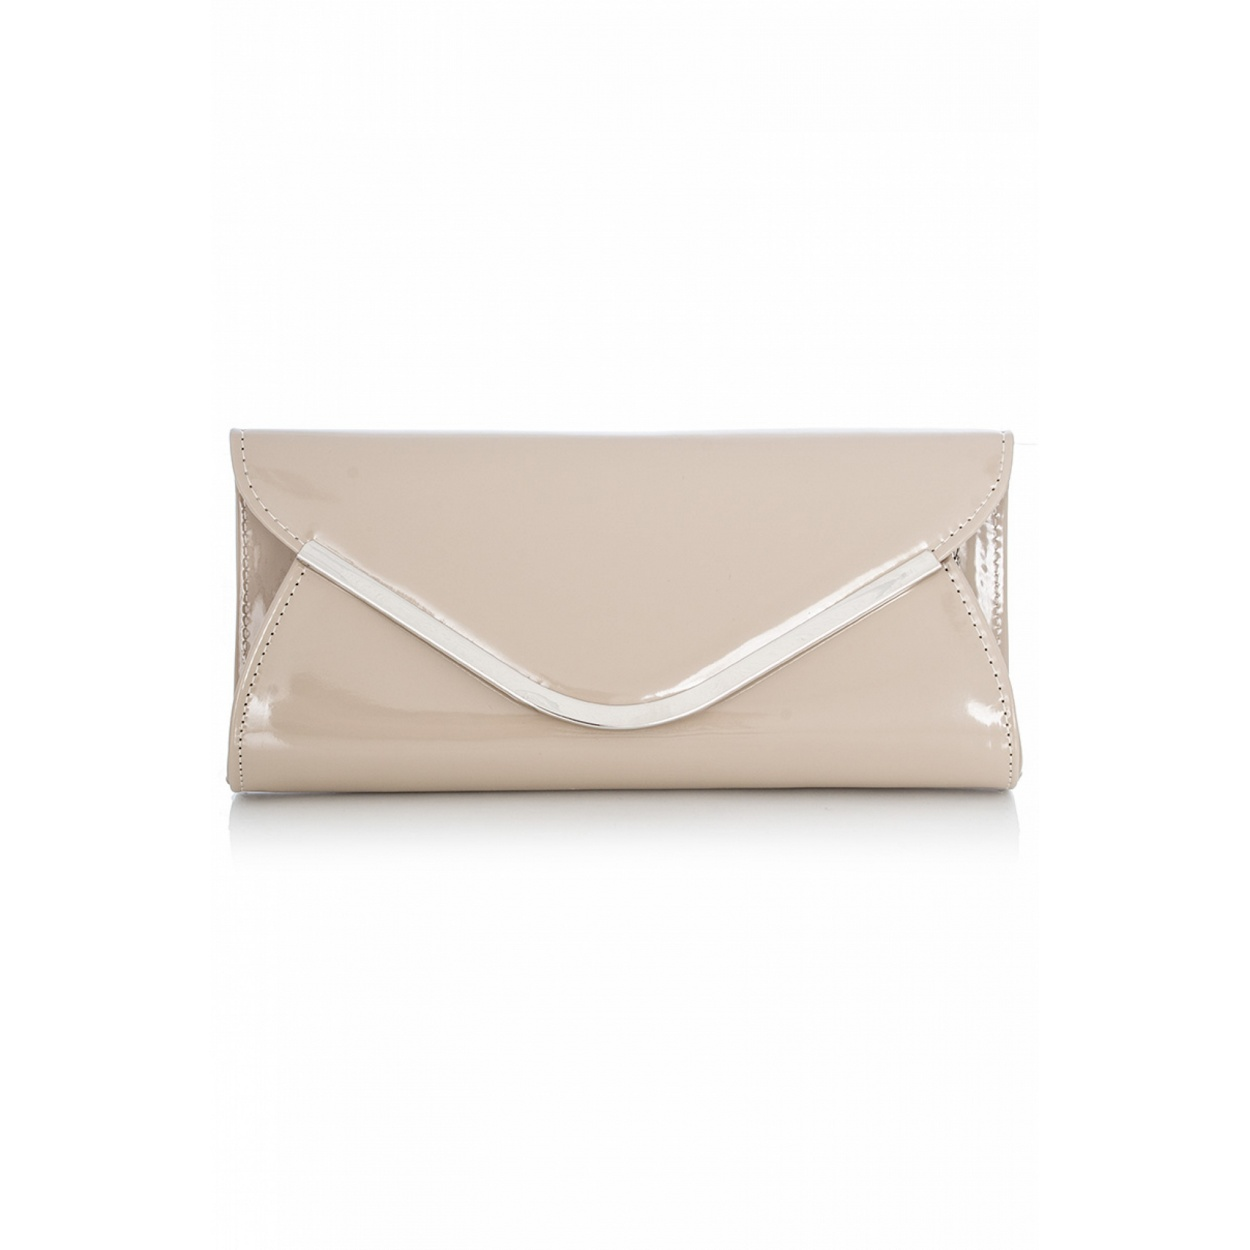 QUIZ Nude Clutch Bag